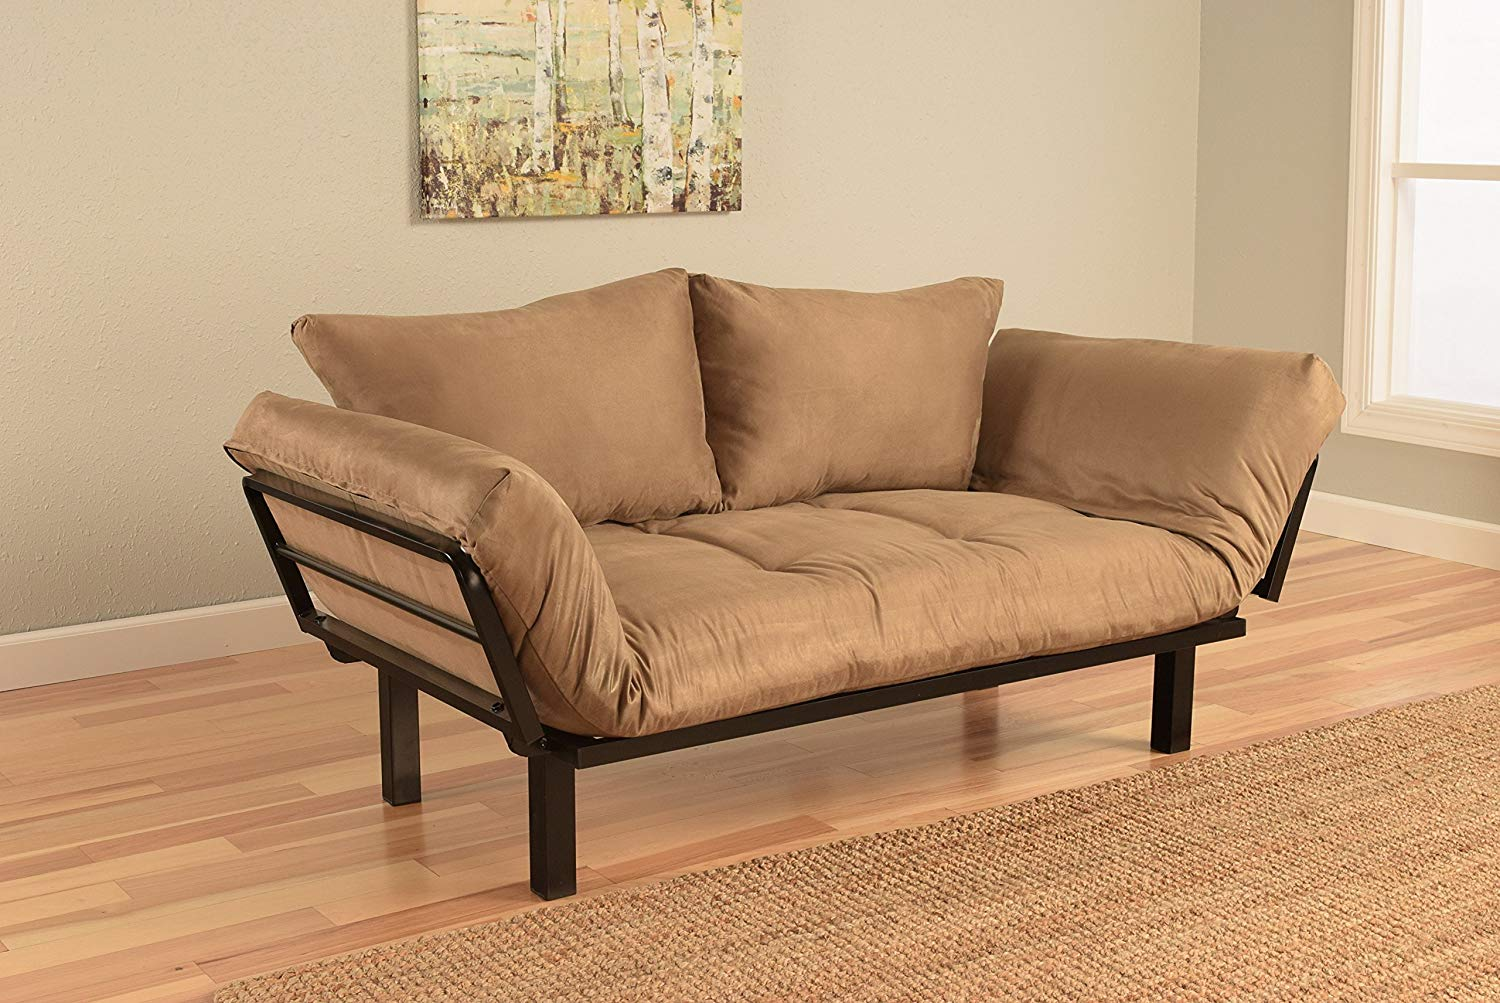 Jerry Sales Bright Day Twin Size Bed Futon